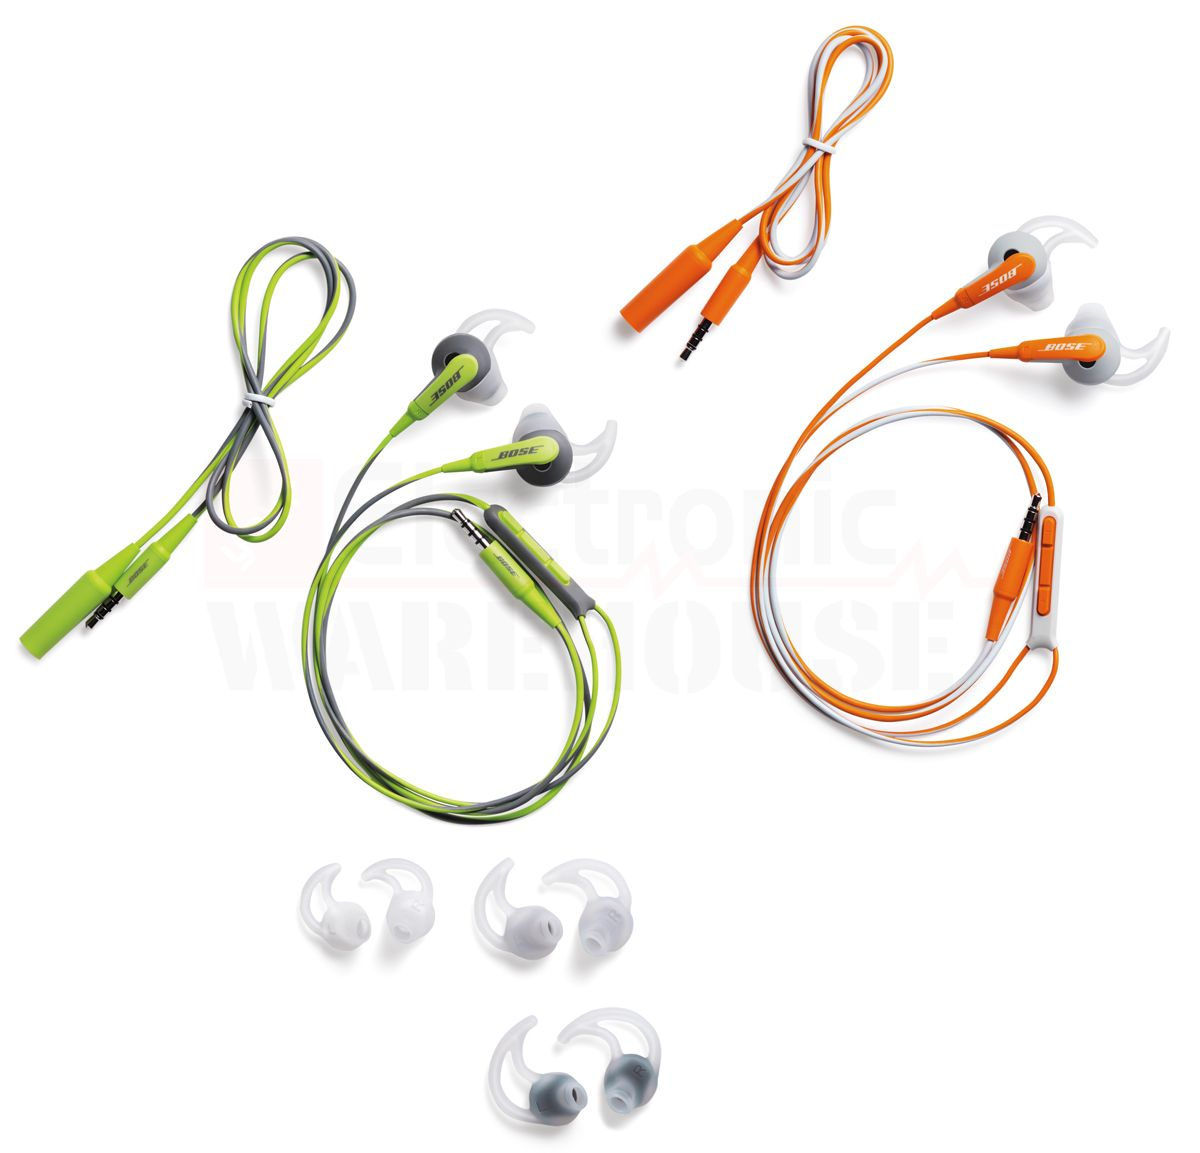 Review of Bose SIE2 and SIE2i Sport Headphones